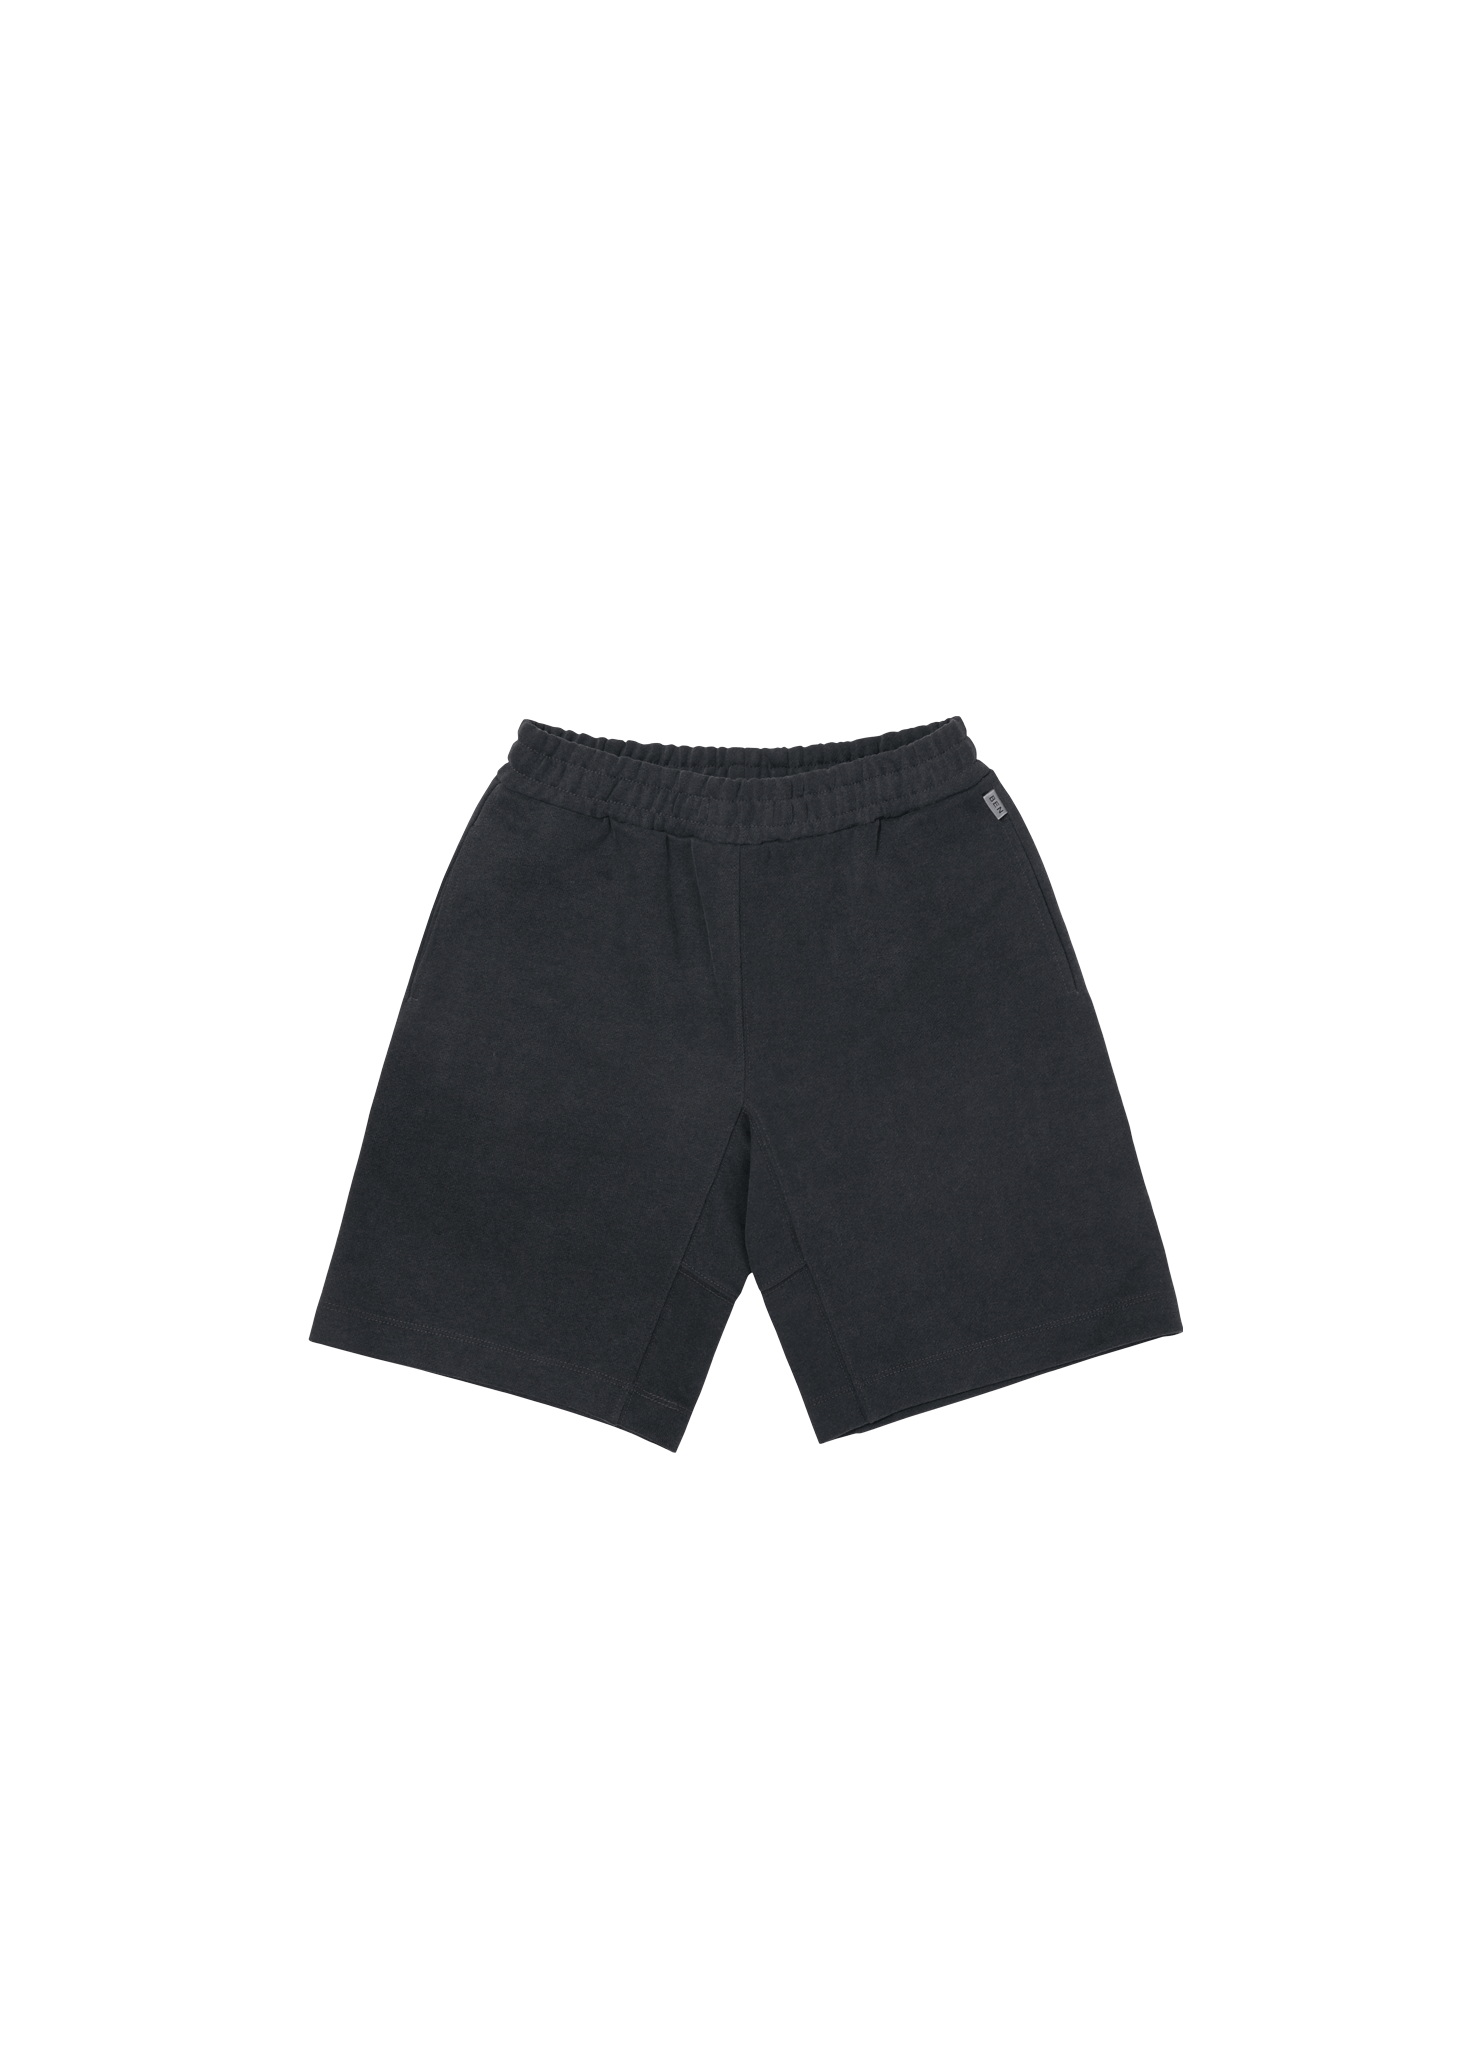 ben Summer 20 Sweat Shorts_Charcoal